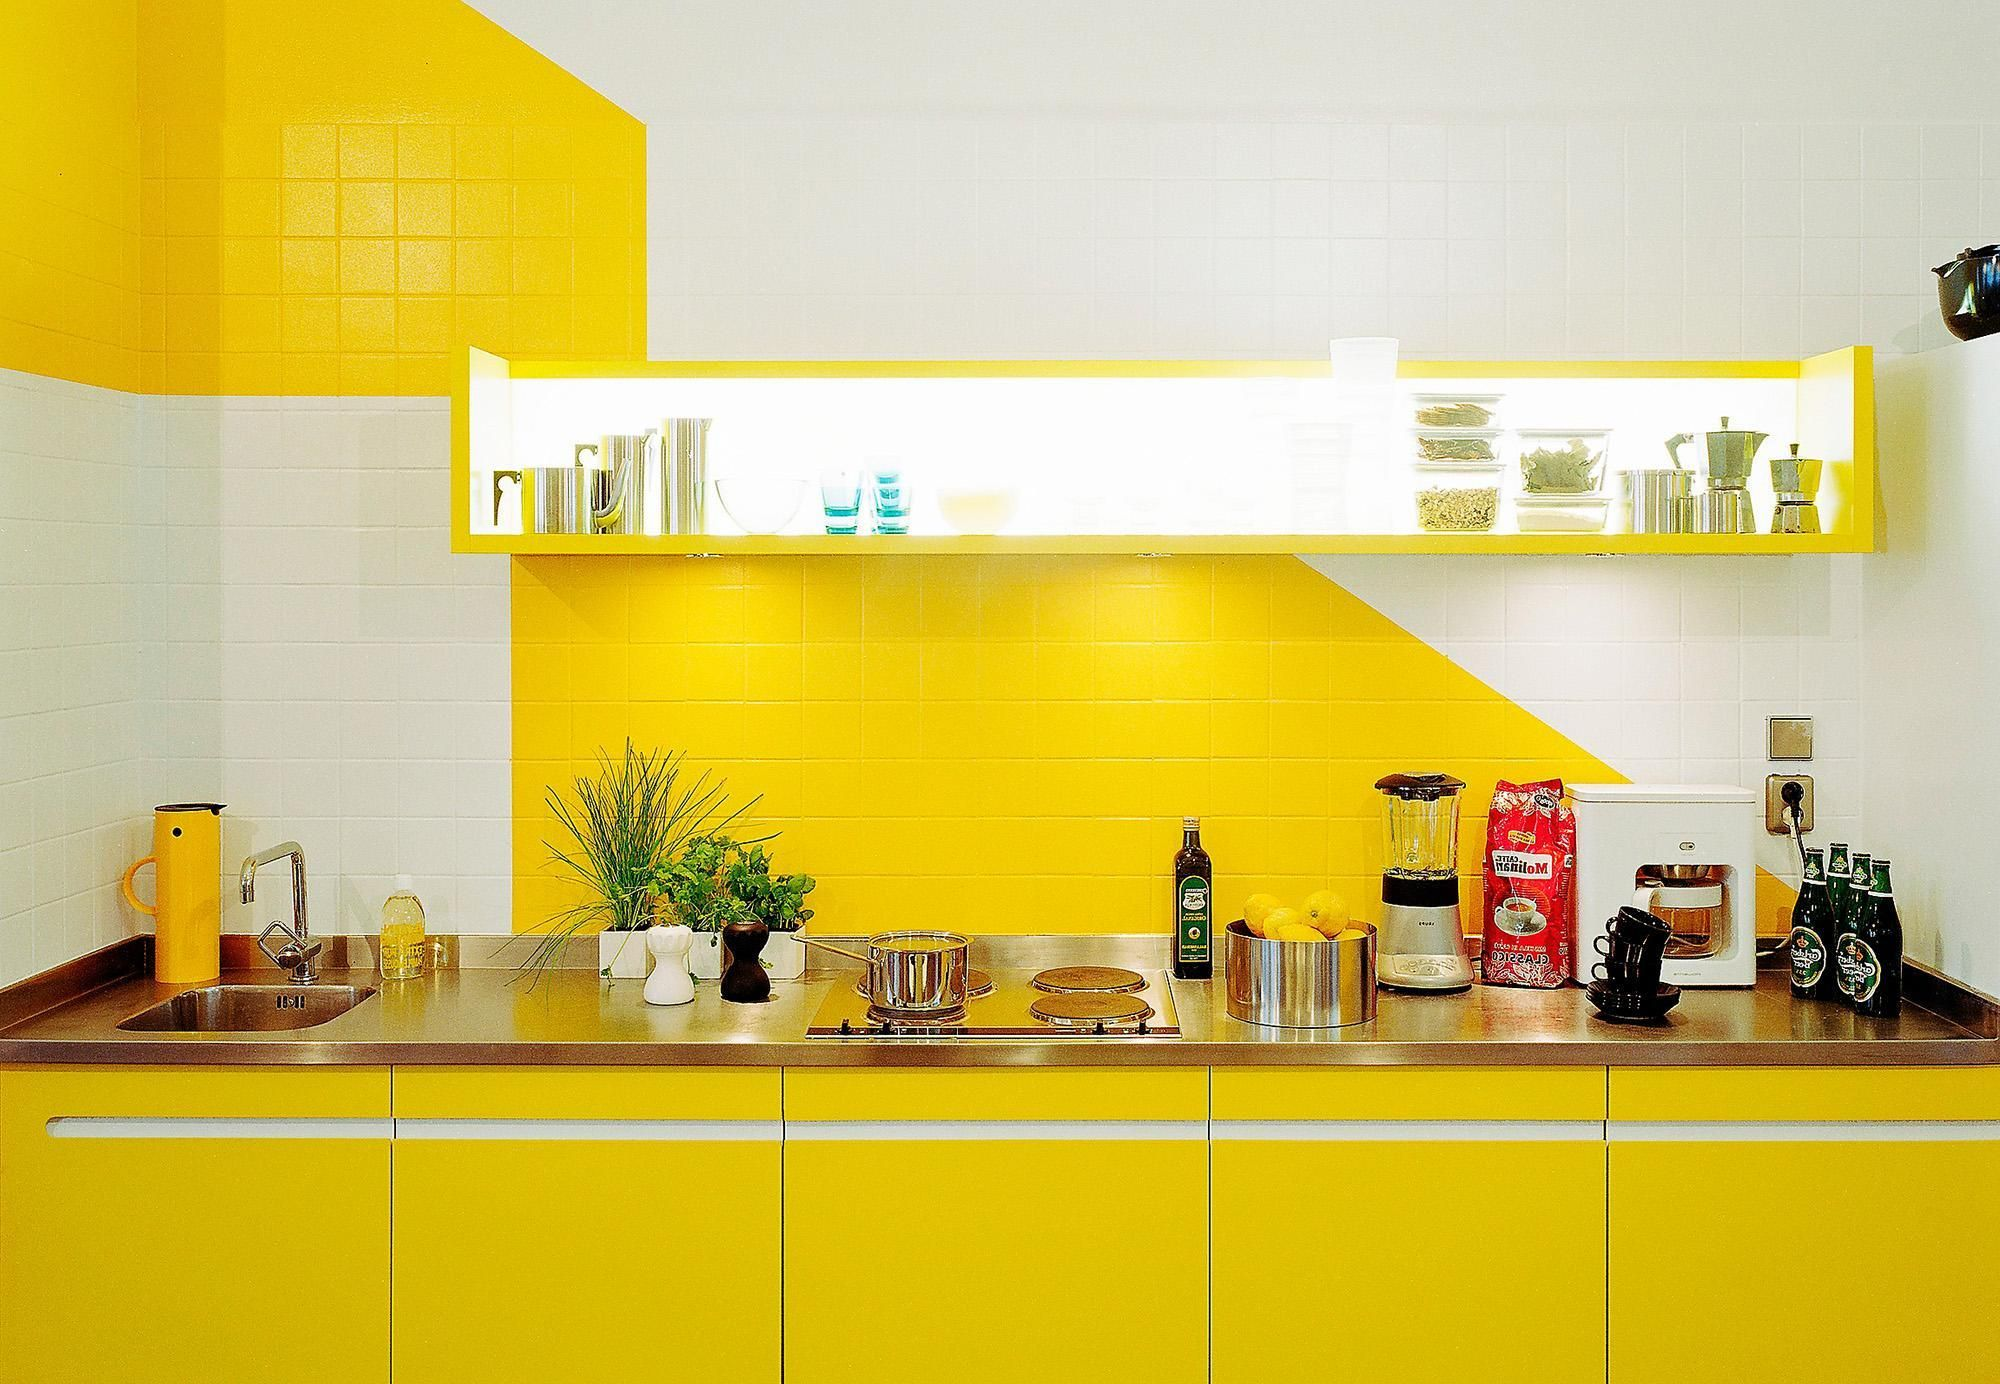 Cool Bright Kitchen Design With Yellow Color And White Kitchen Wall Tile  Plus Cabinet Shelves Mounted On Wall Bright And Colorful Kitchen Design  Ideas With ...